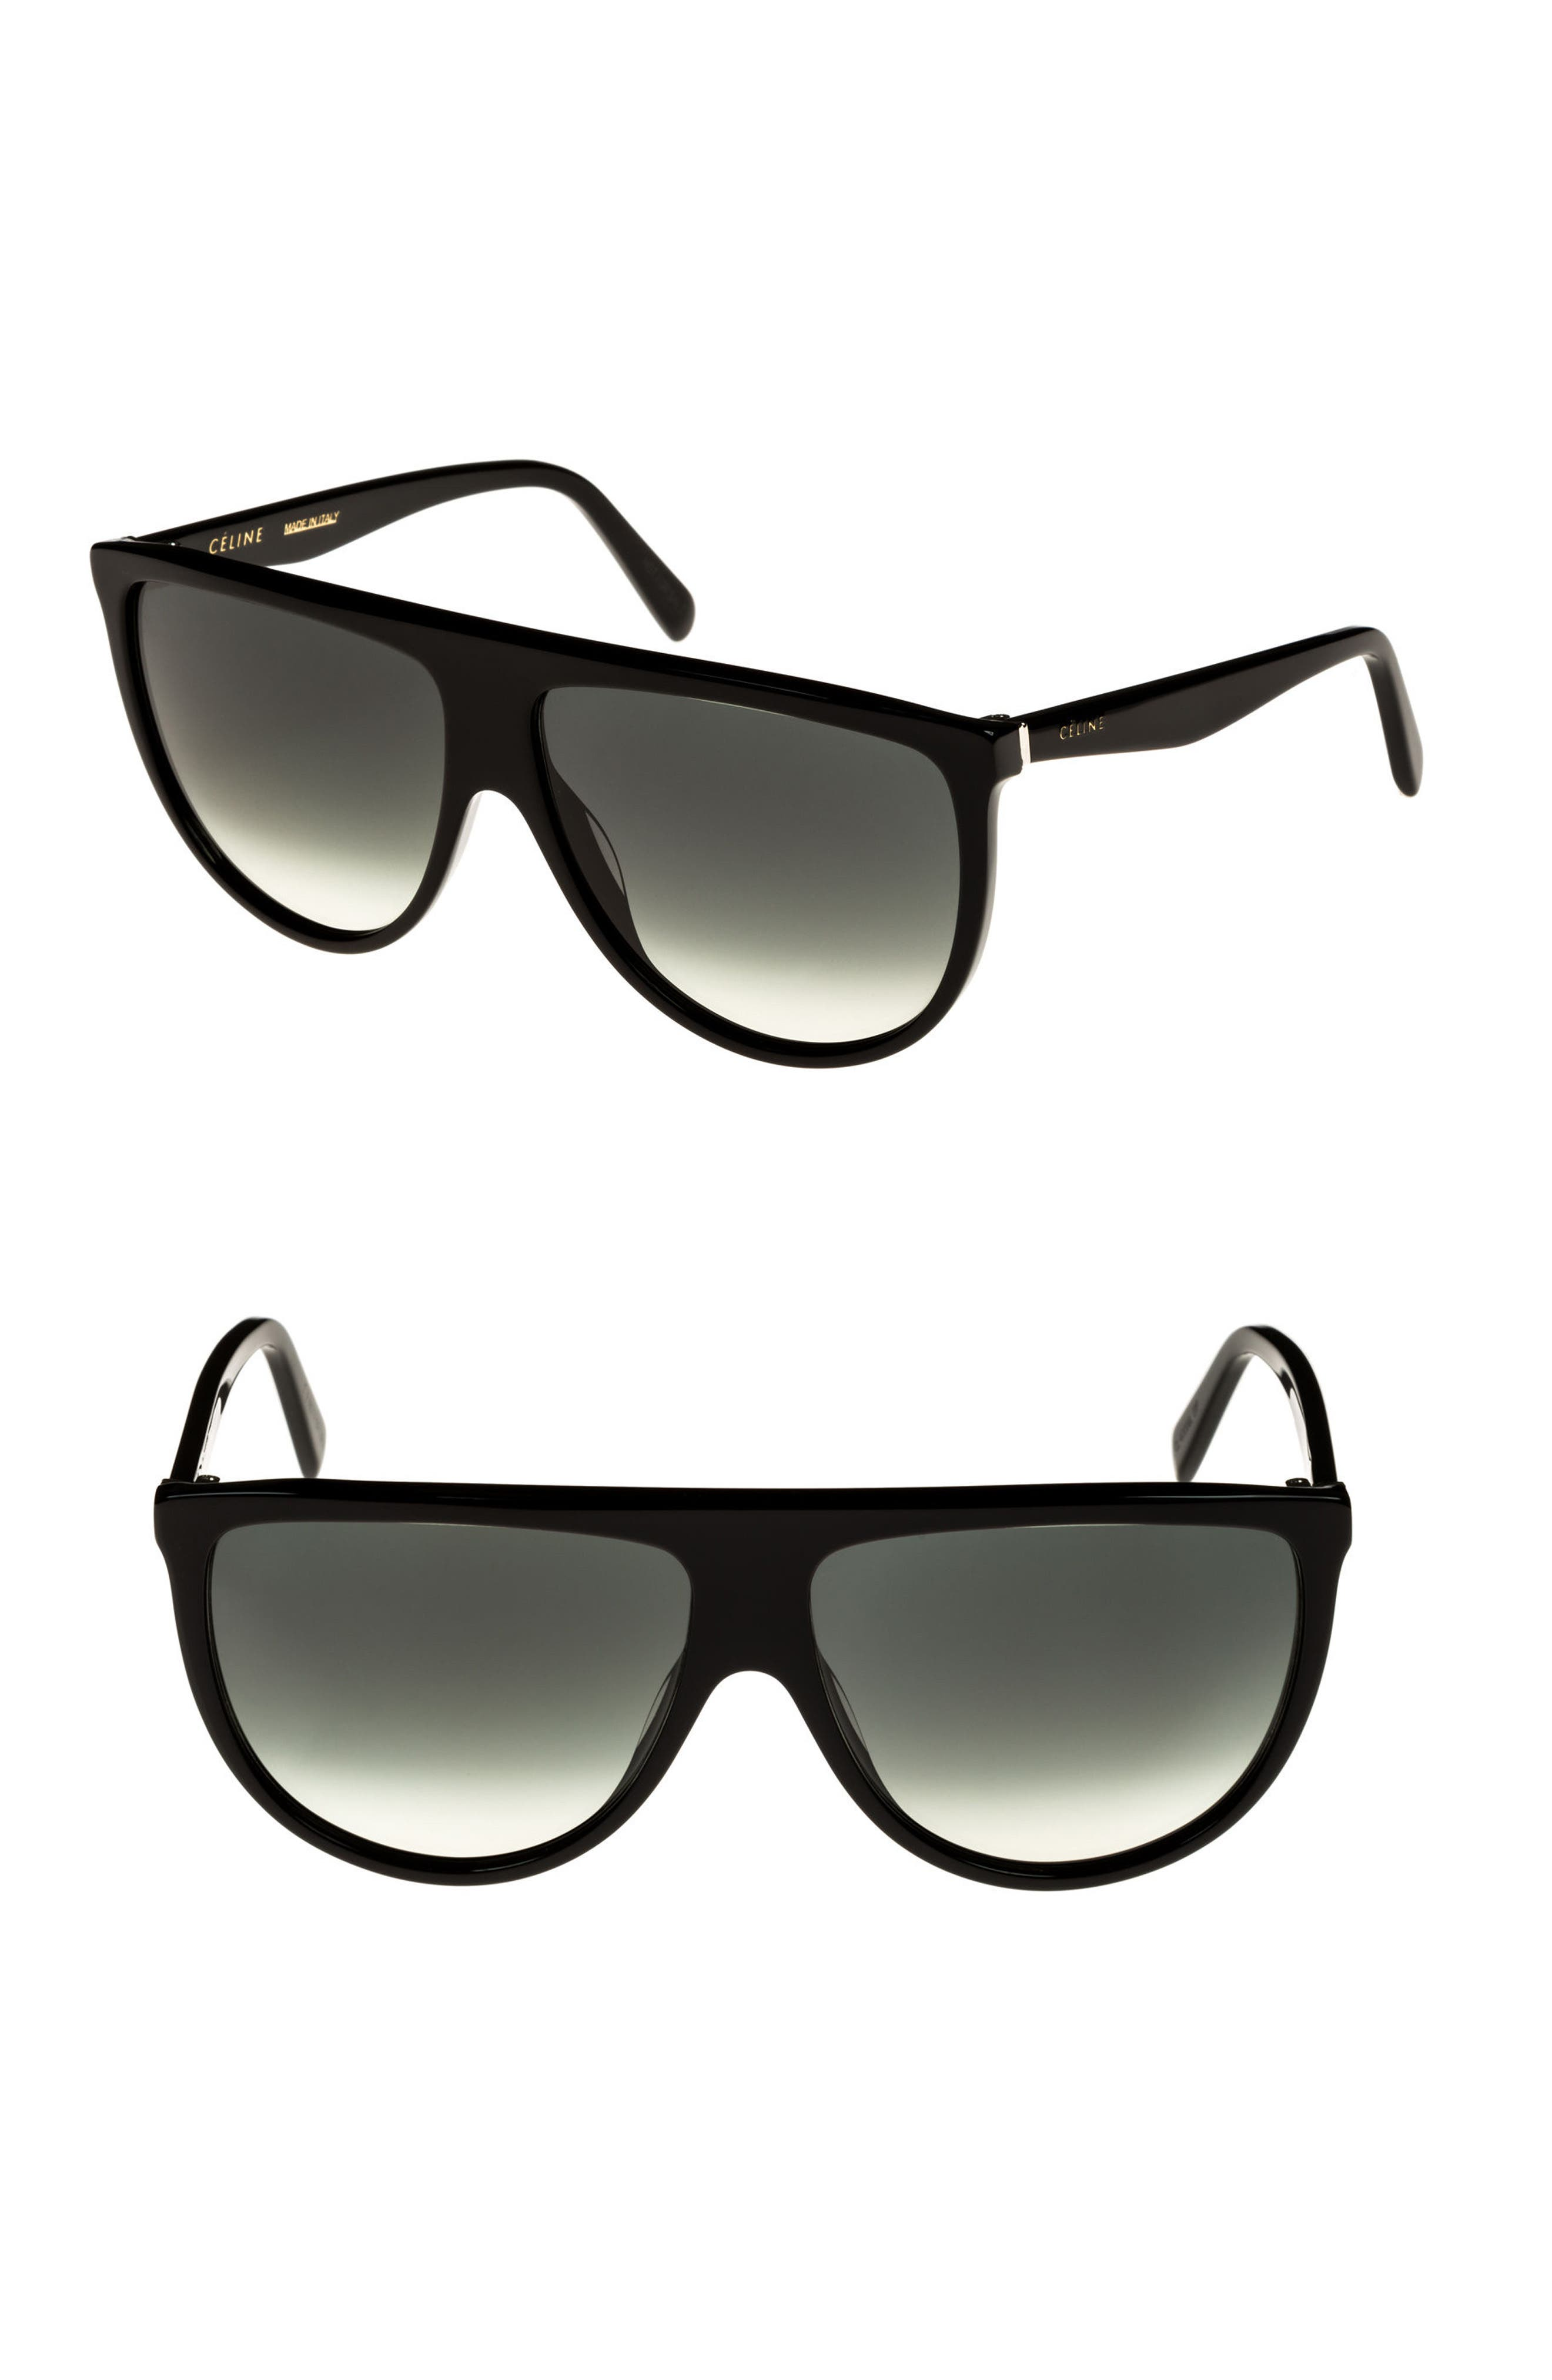 Celine 62Mm Pilot Sunglasses - Black/ Green